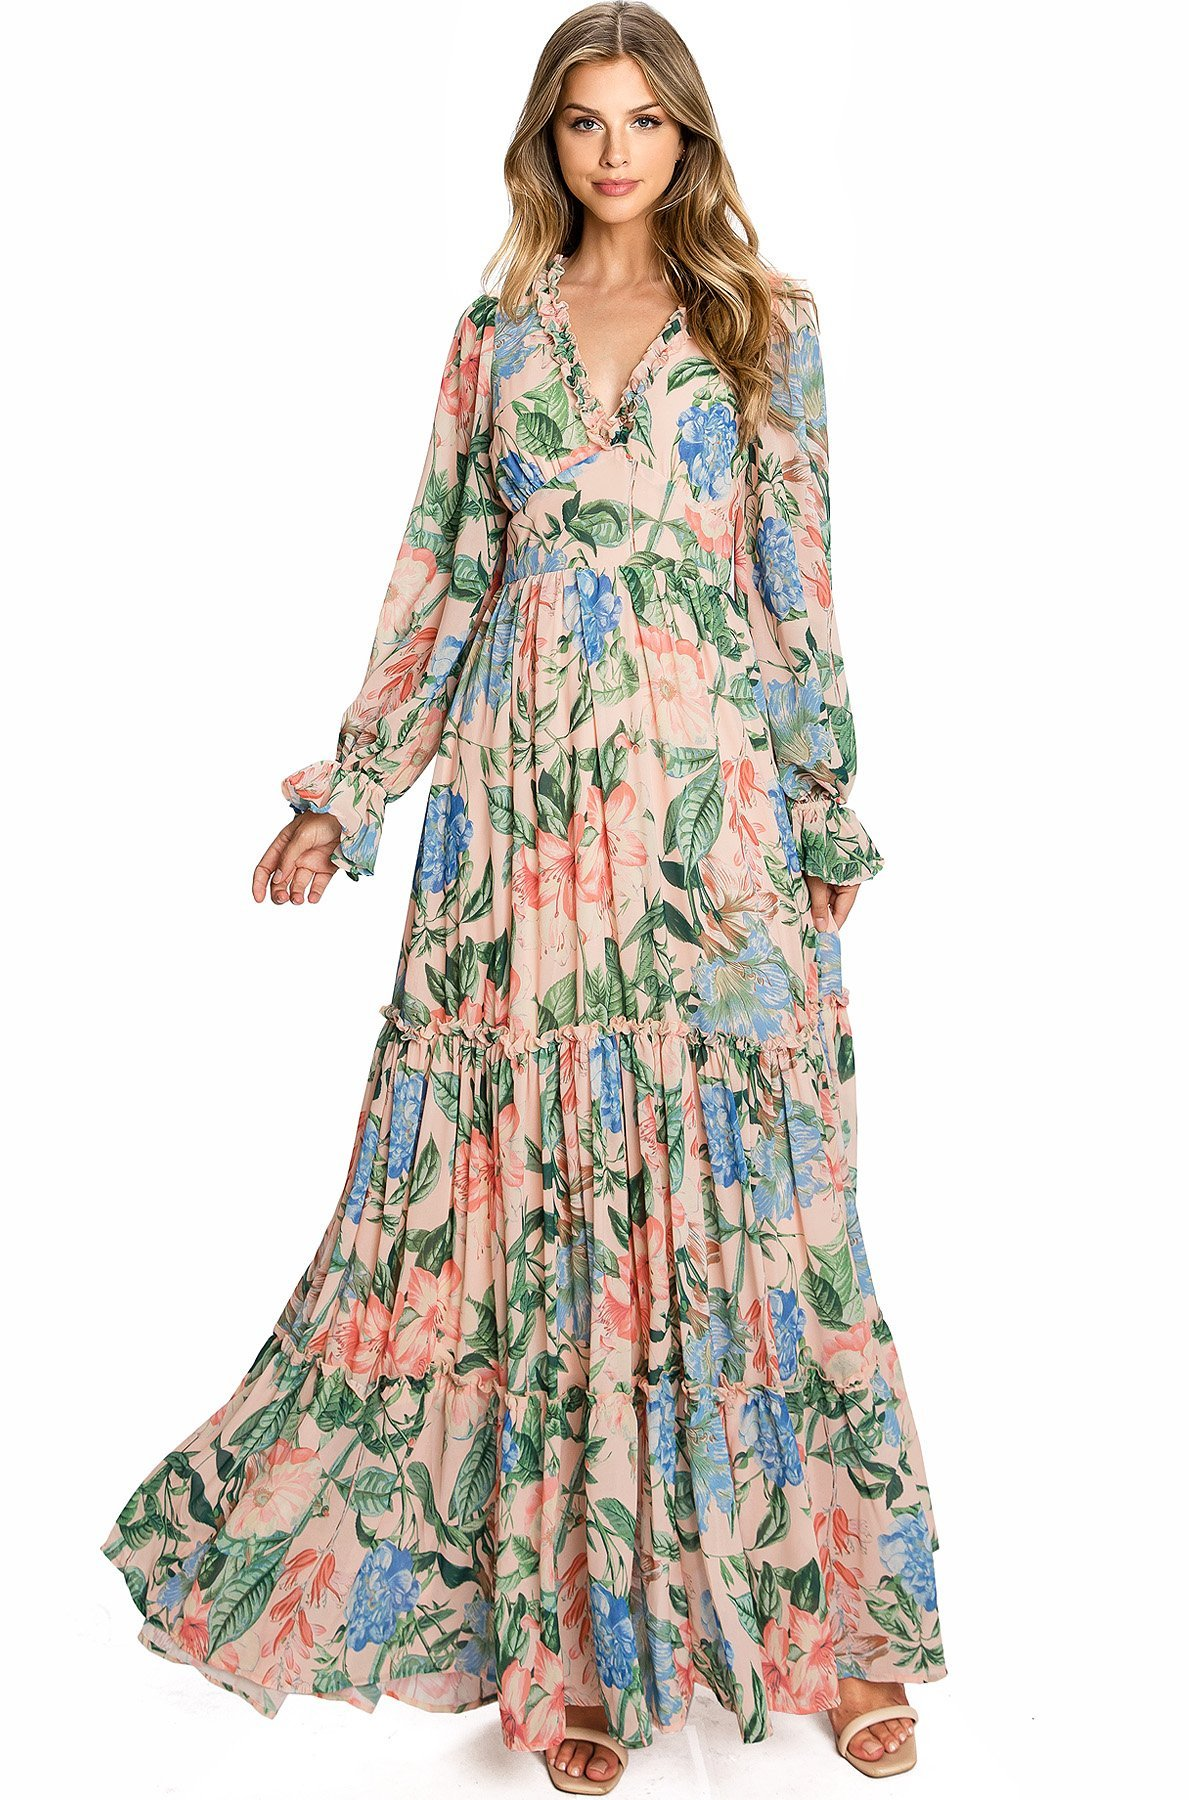 Image of Kindred Bloom Maxi Dress